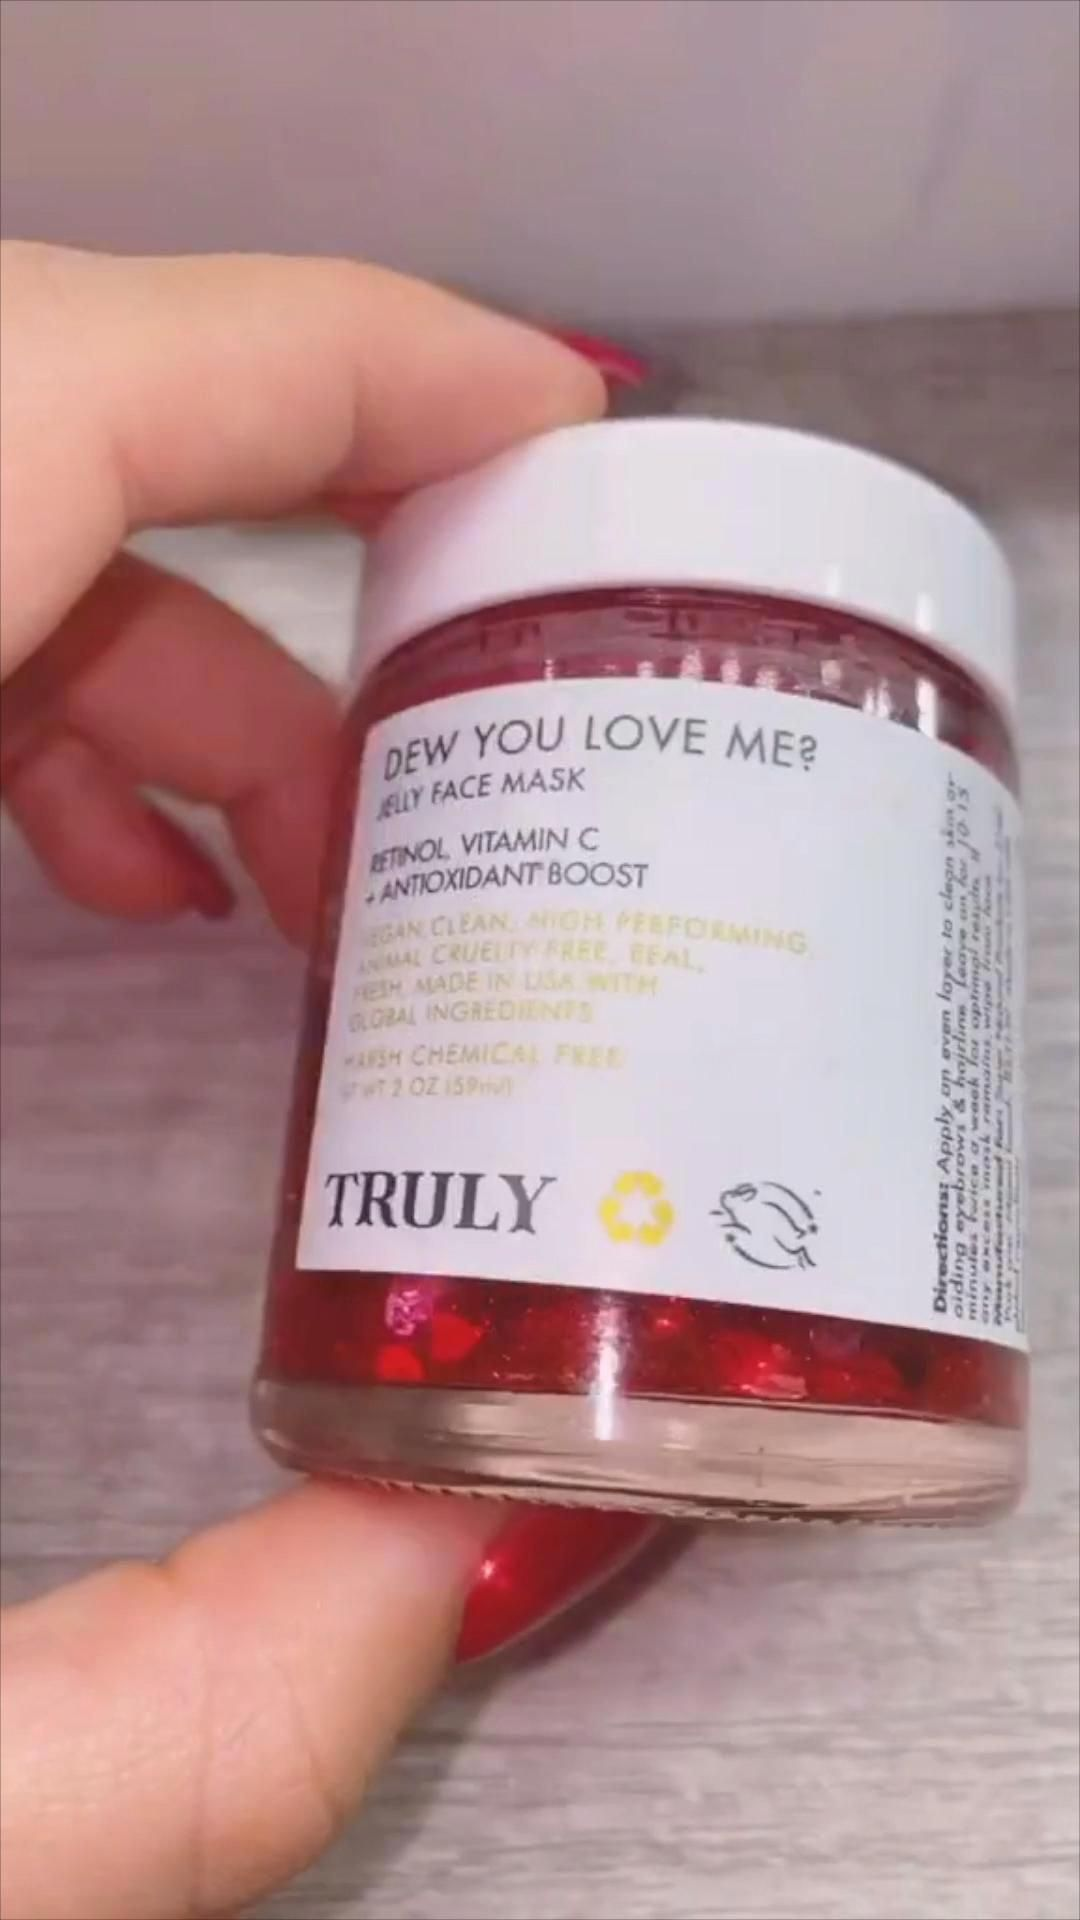 Dew You Love Me Jelly Face Mask In 2020 Oily Skin Care Skin Care Face Mask